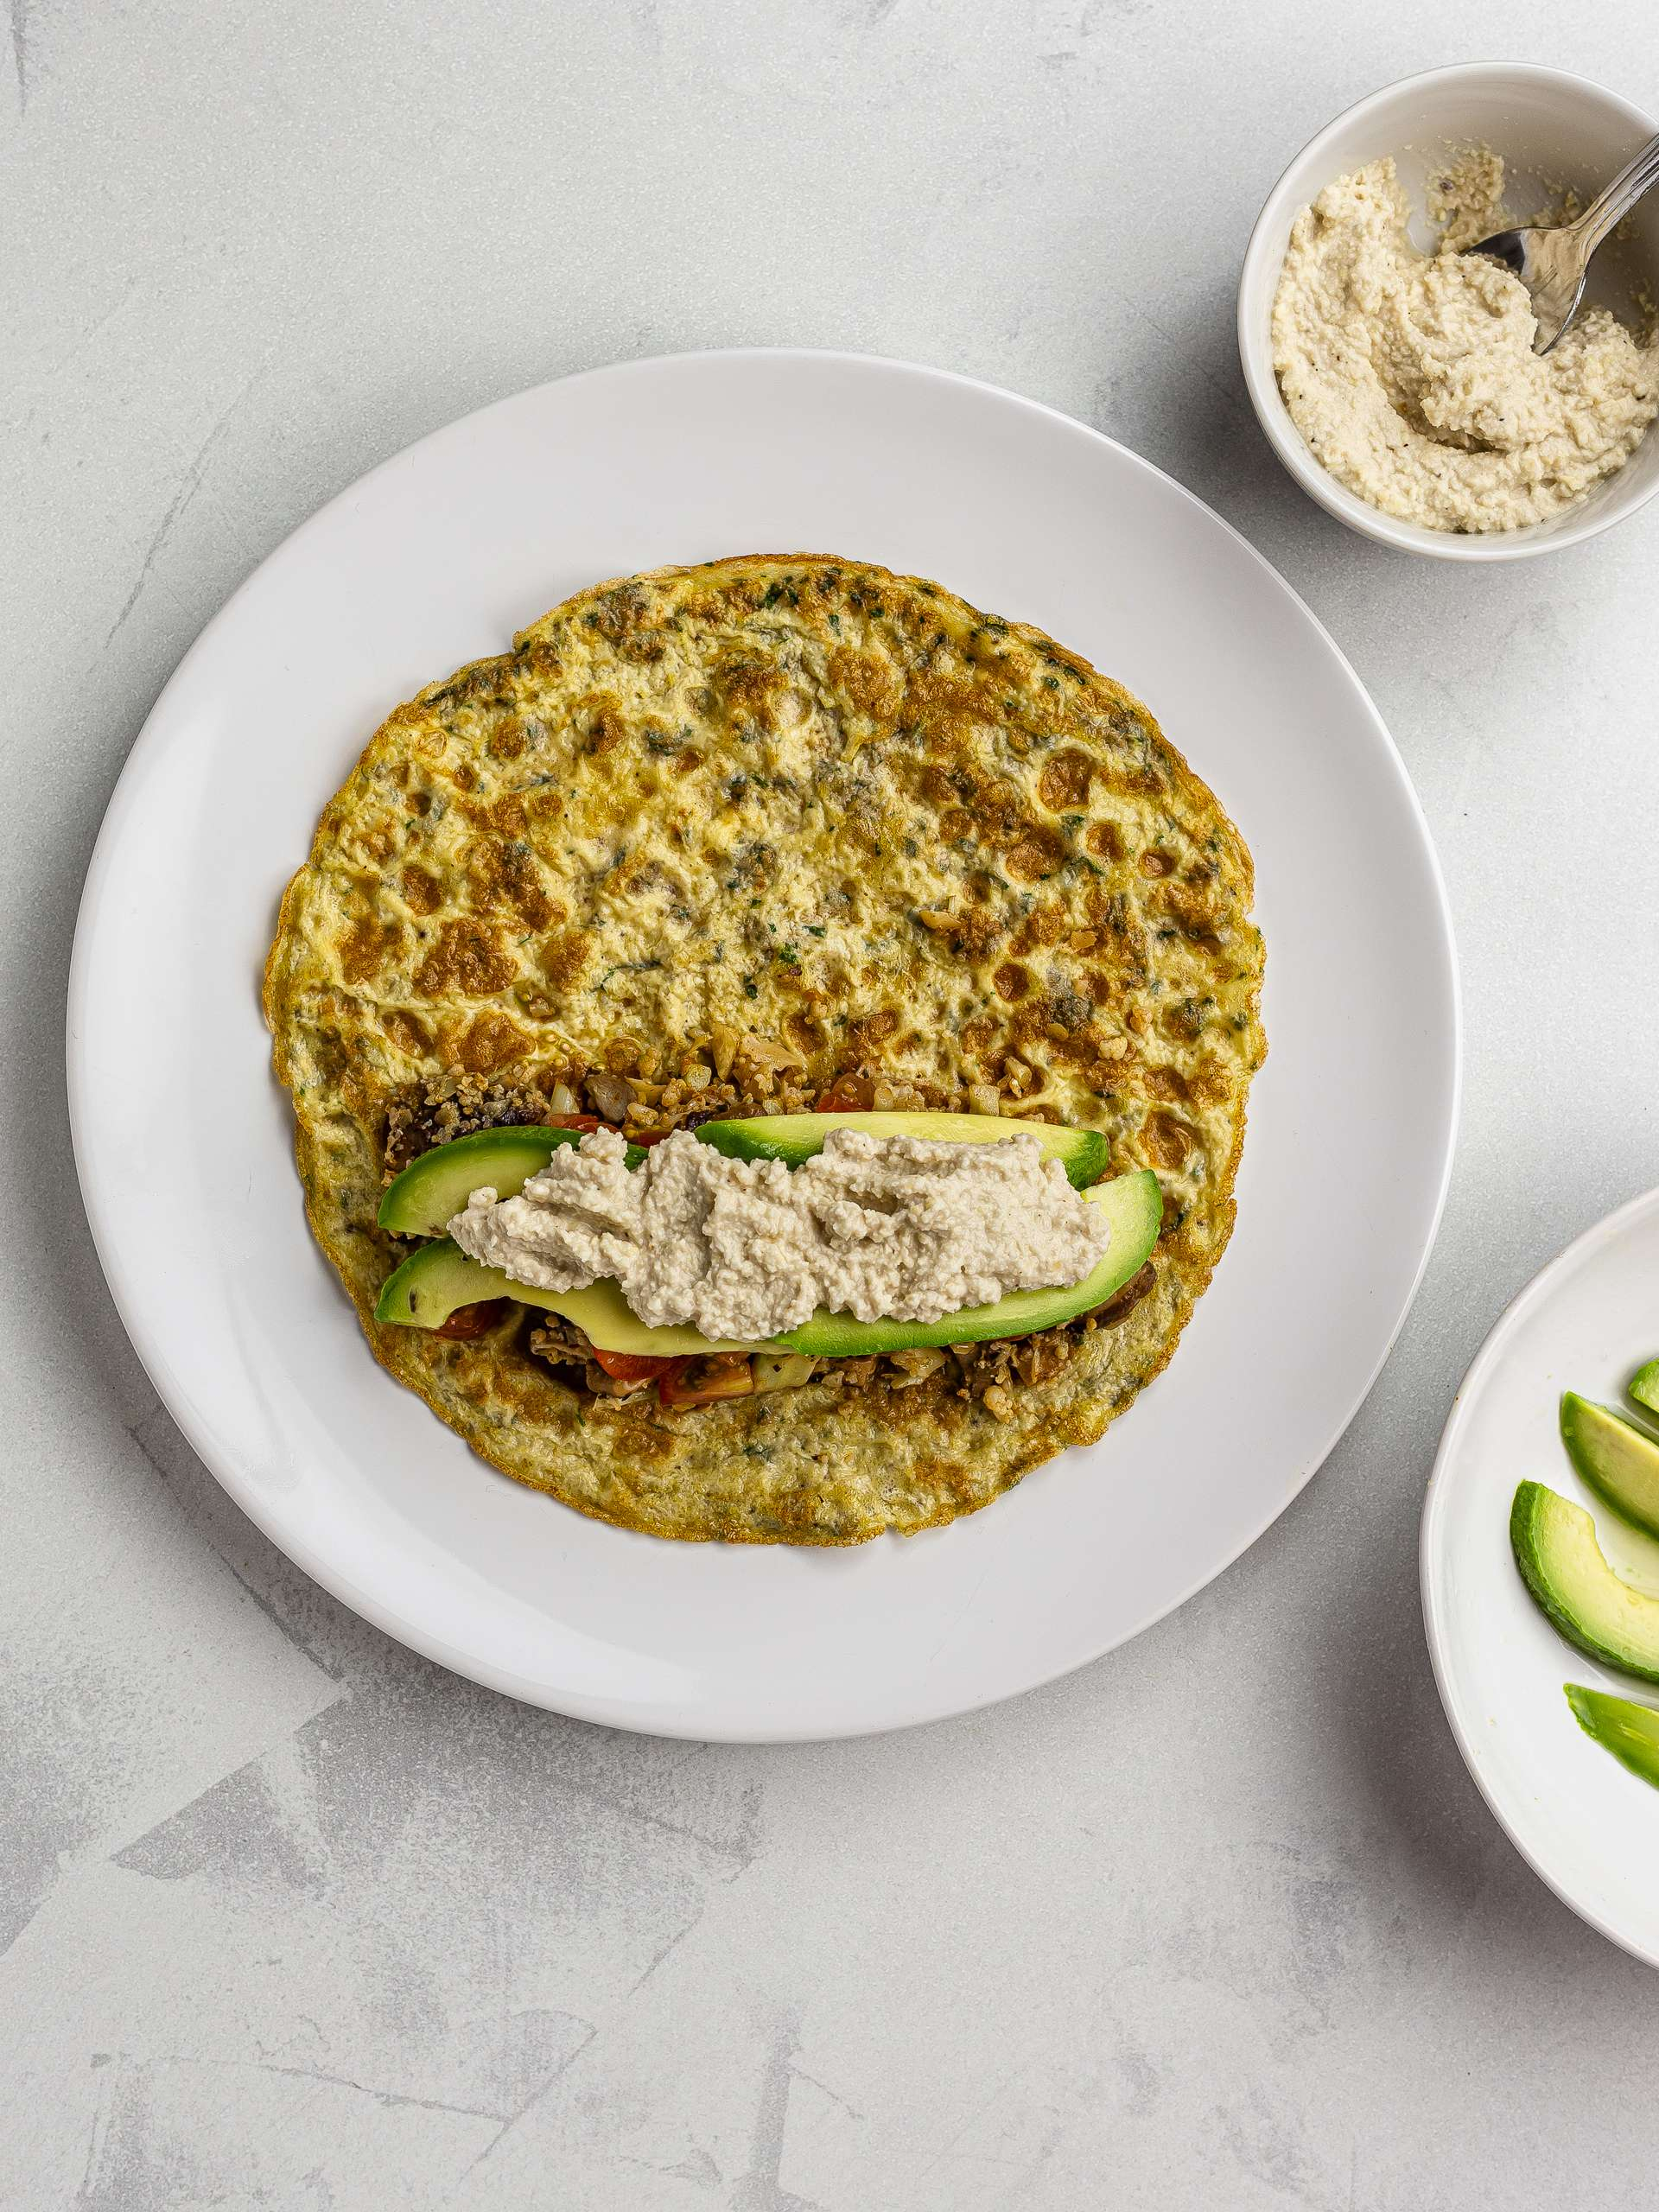 low-carb burrito with egg tortilla and avocado